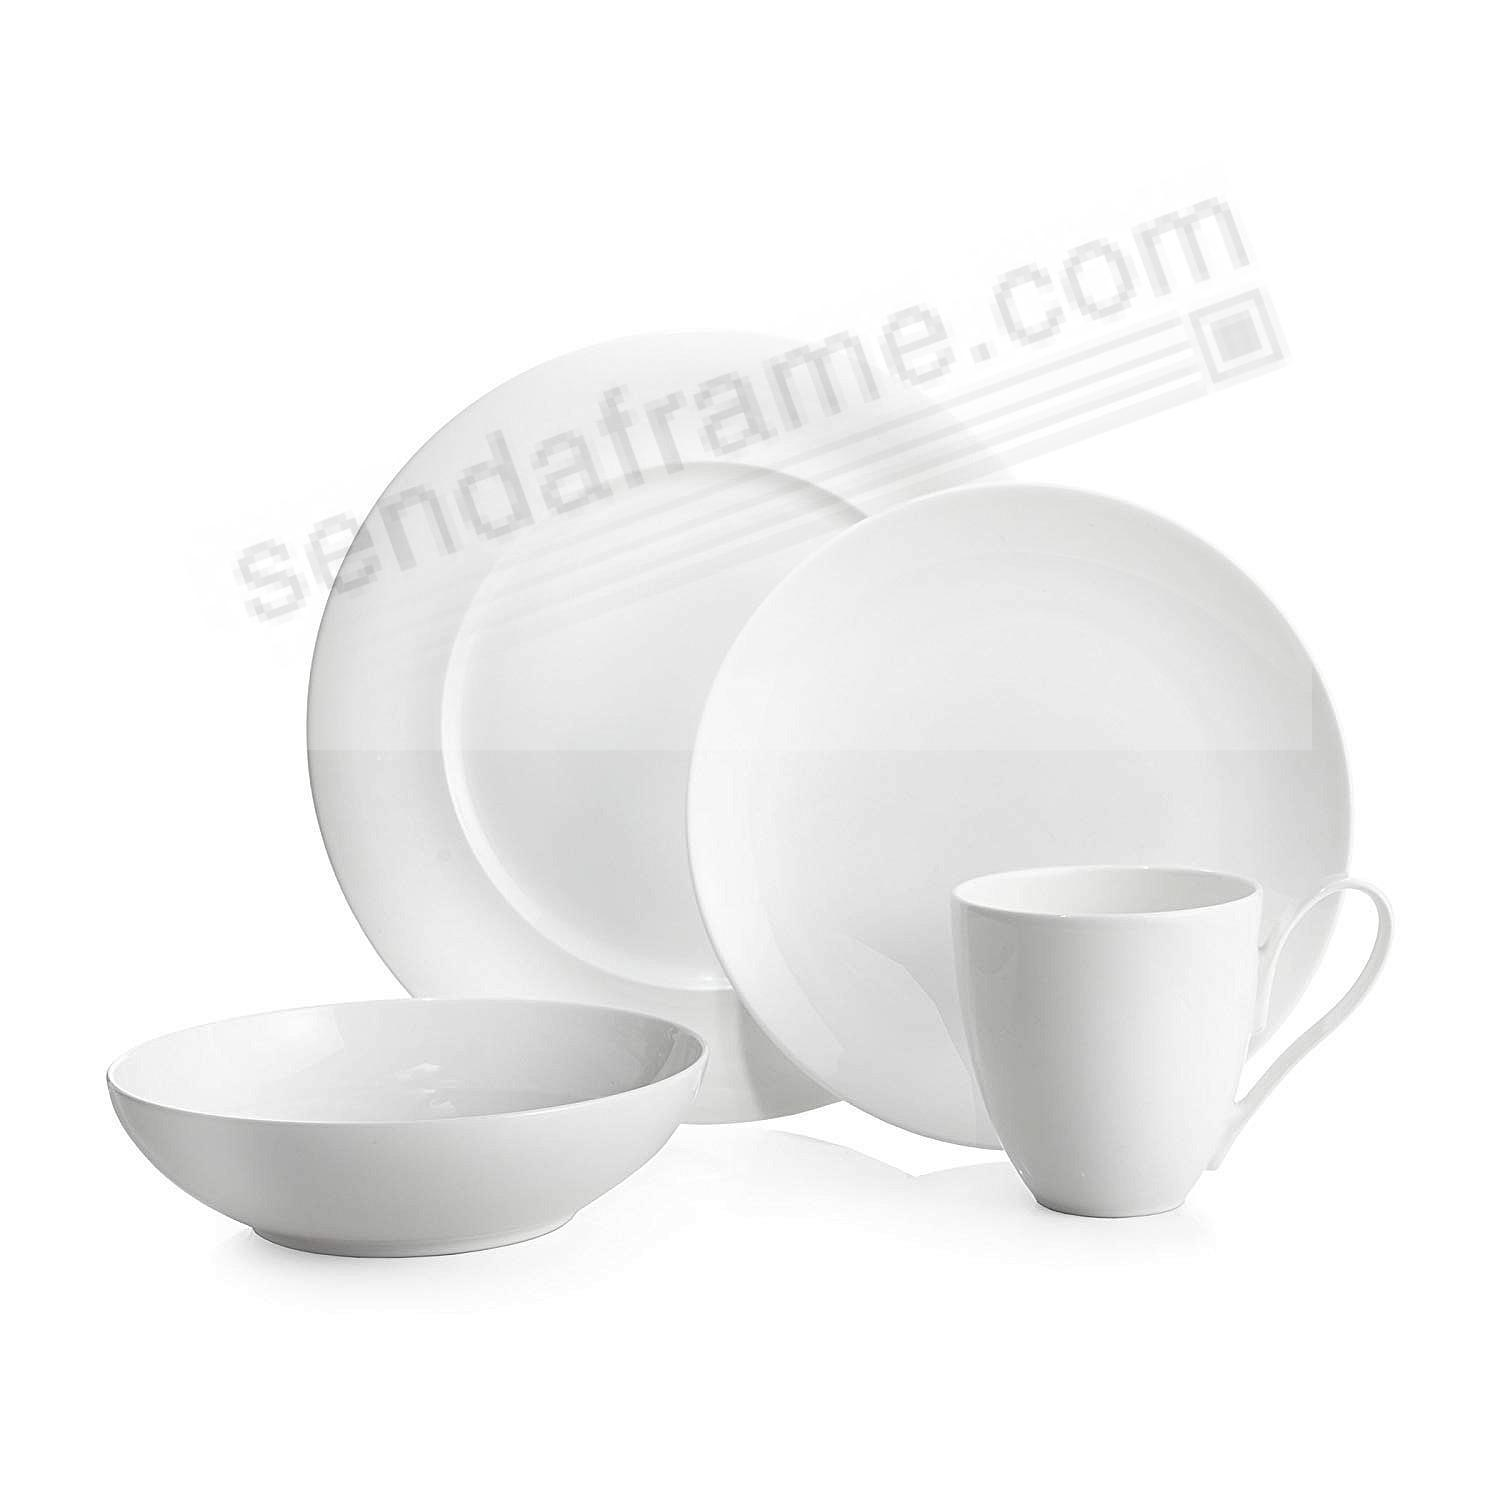 The SKYE DINNERWARE 4-PC SET crafted by Nambe®